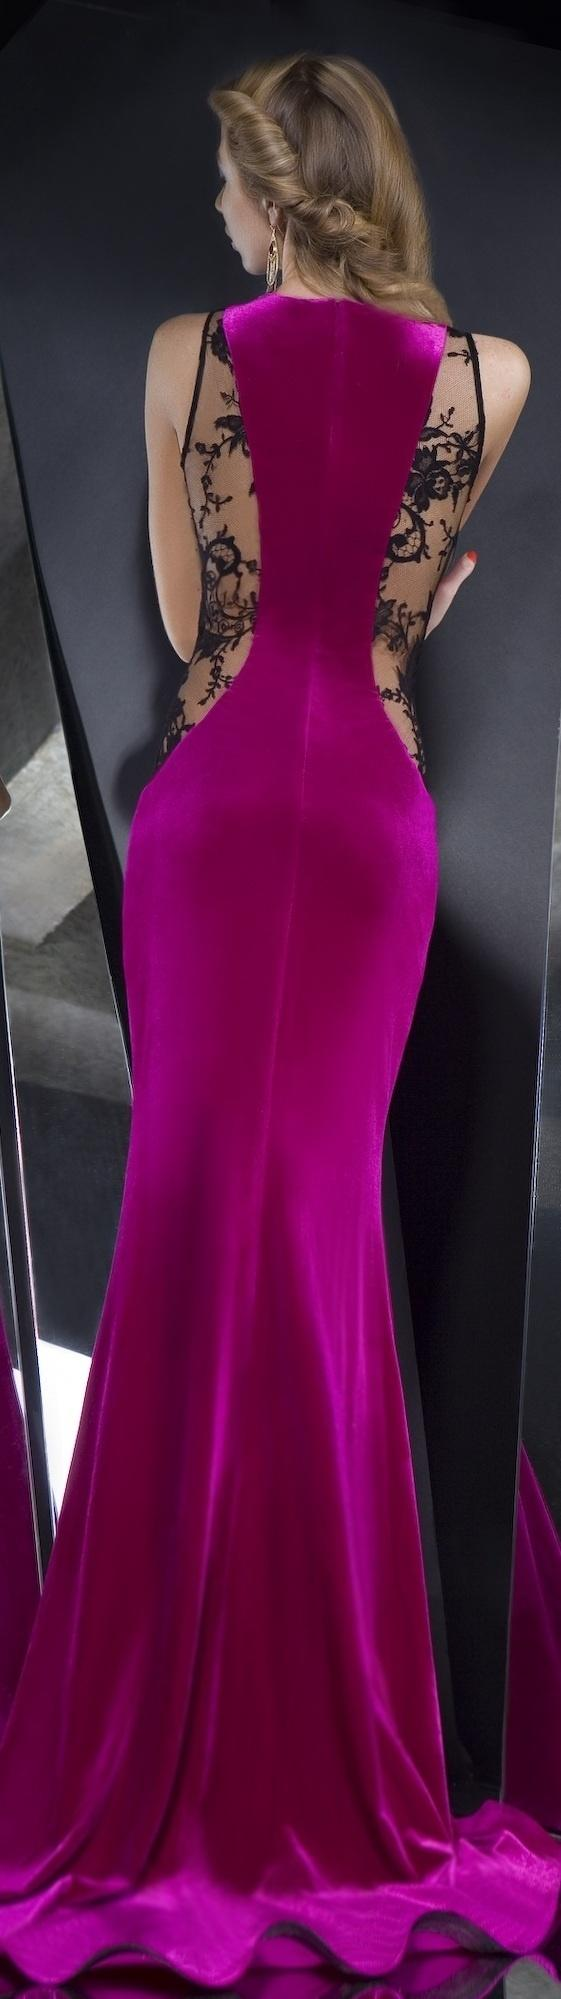 Mariage - Mariages - Apportez Sexy Back